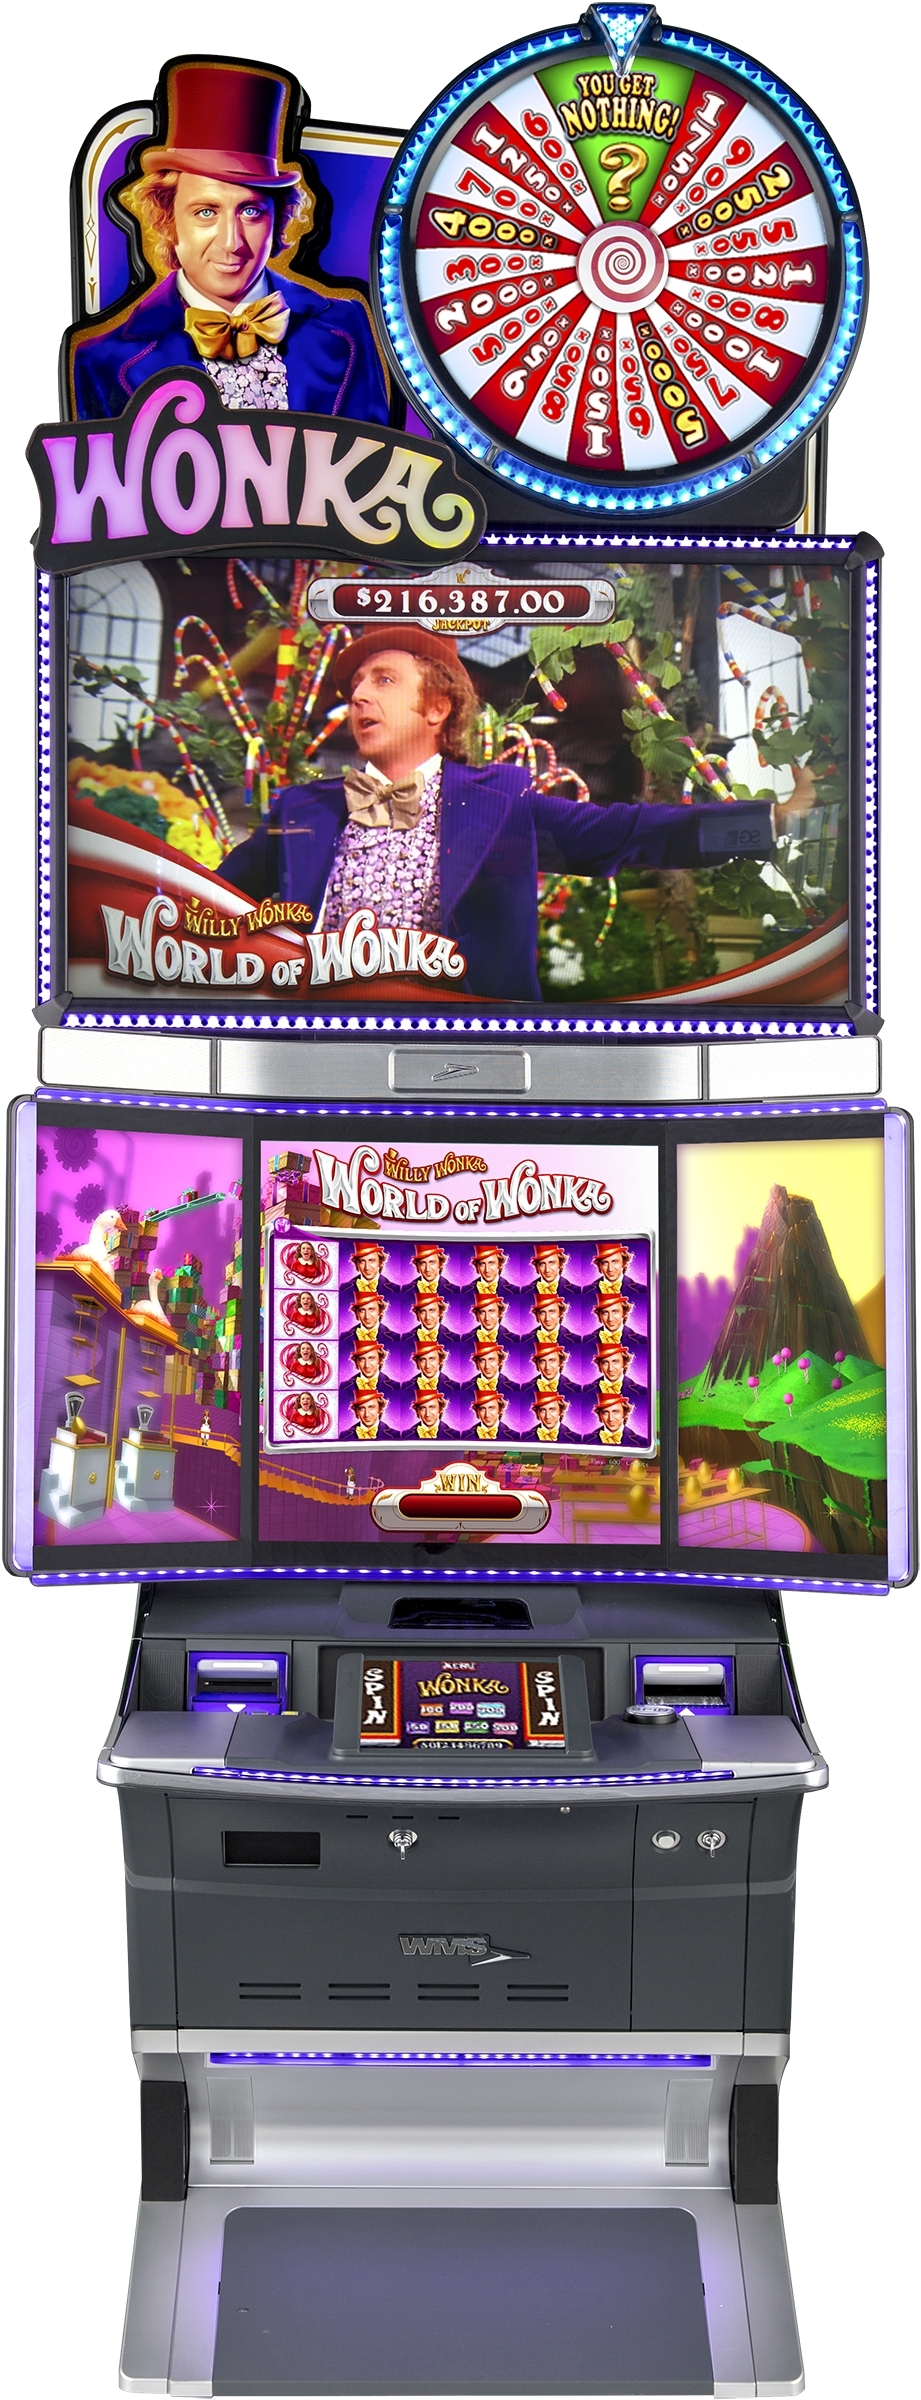 """Scientific Games' """"World of Wonka"""" video slot machine debuts in western Pennsylvania at Rivers Casino. (Photo: Business Wire)"""